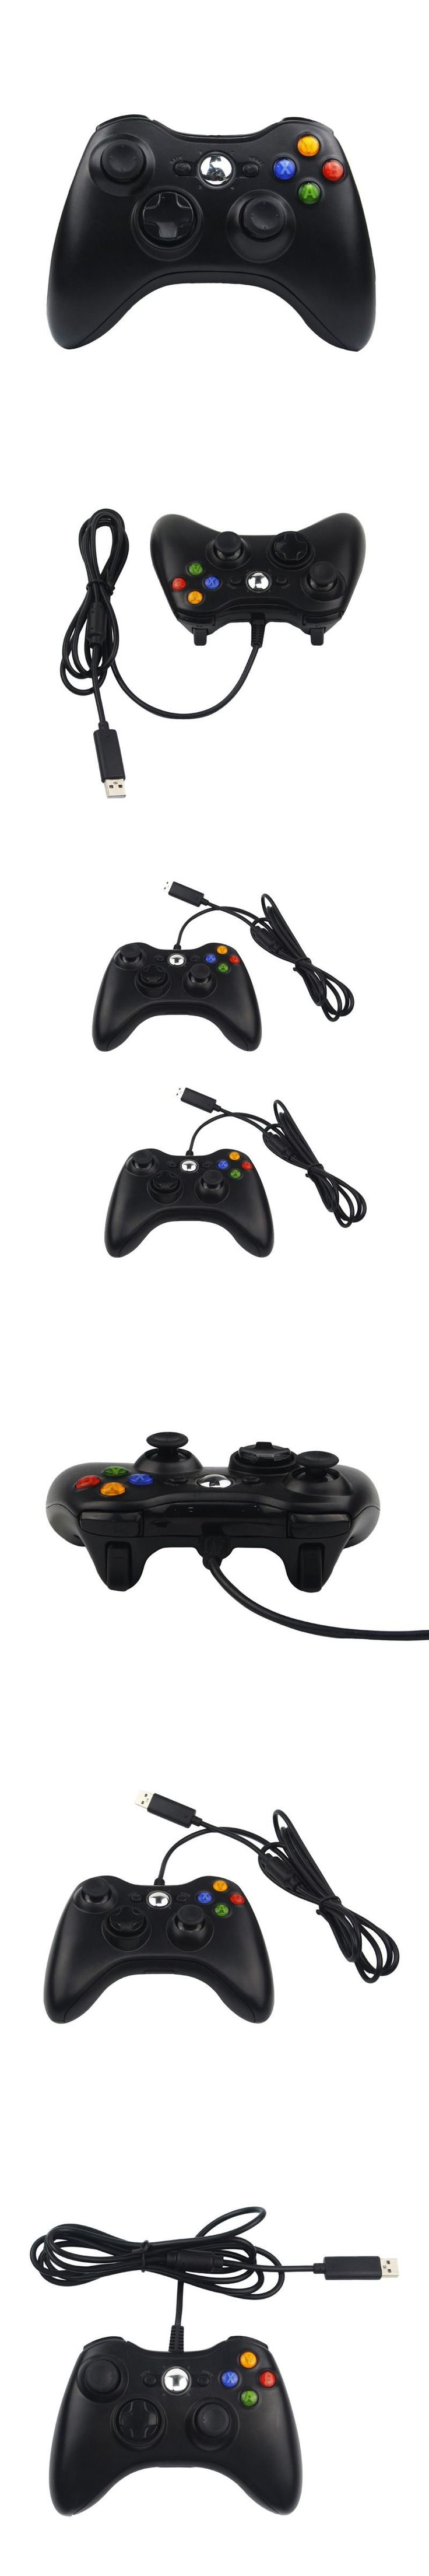 USB Wired Game Controller Shaking Gamepad Joypad Joystick For Xbox 360 Controller Slim Accessory PC Computer for Raspberry Pi 3